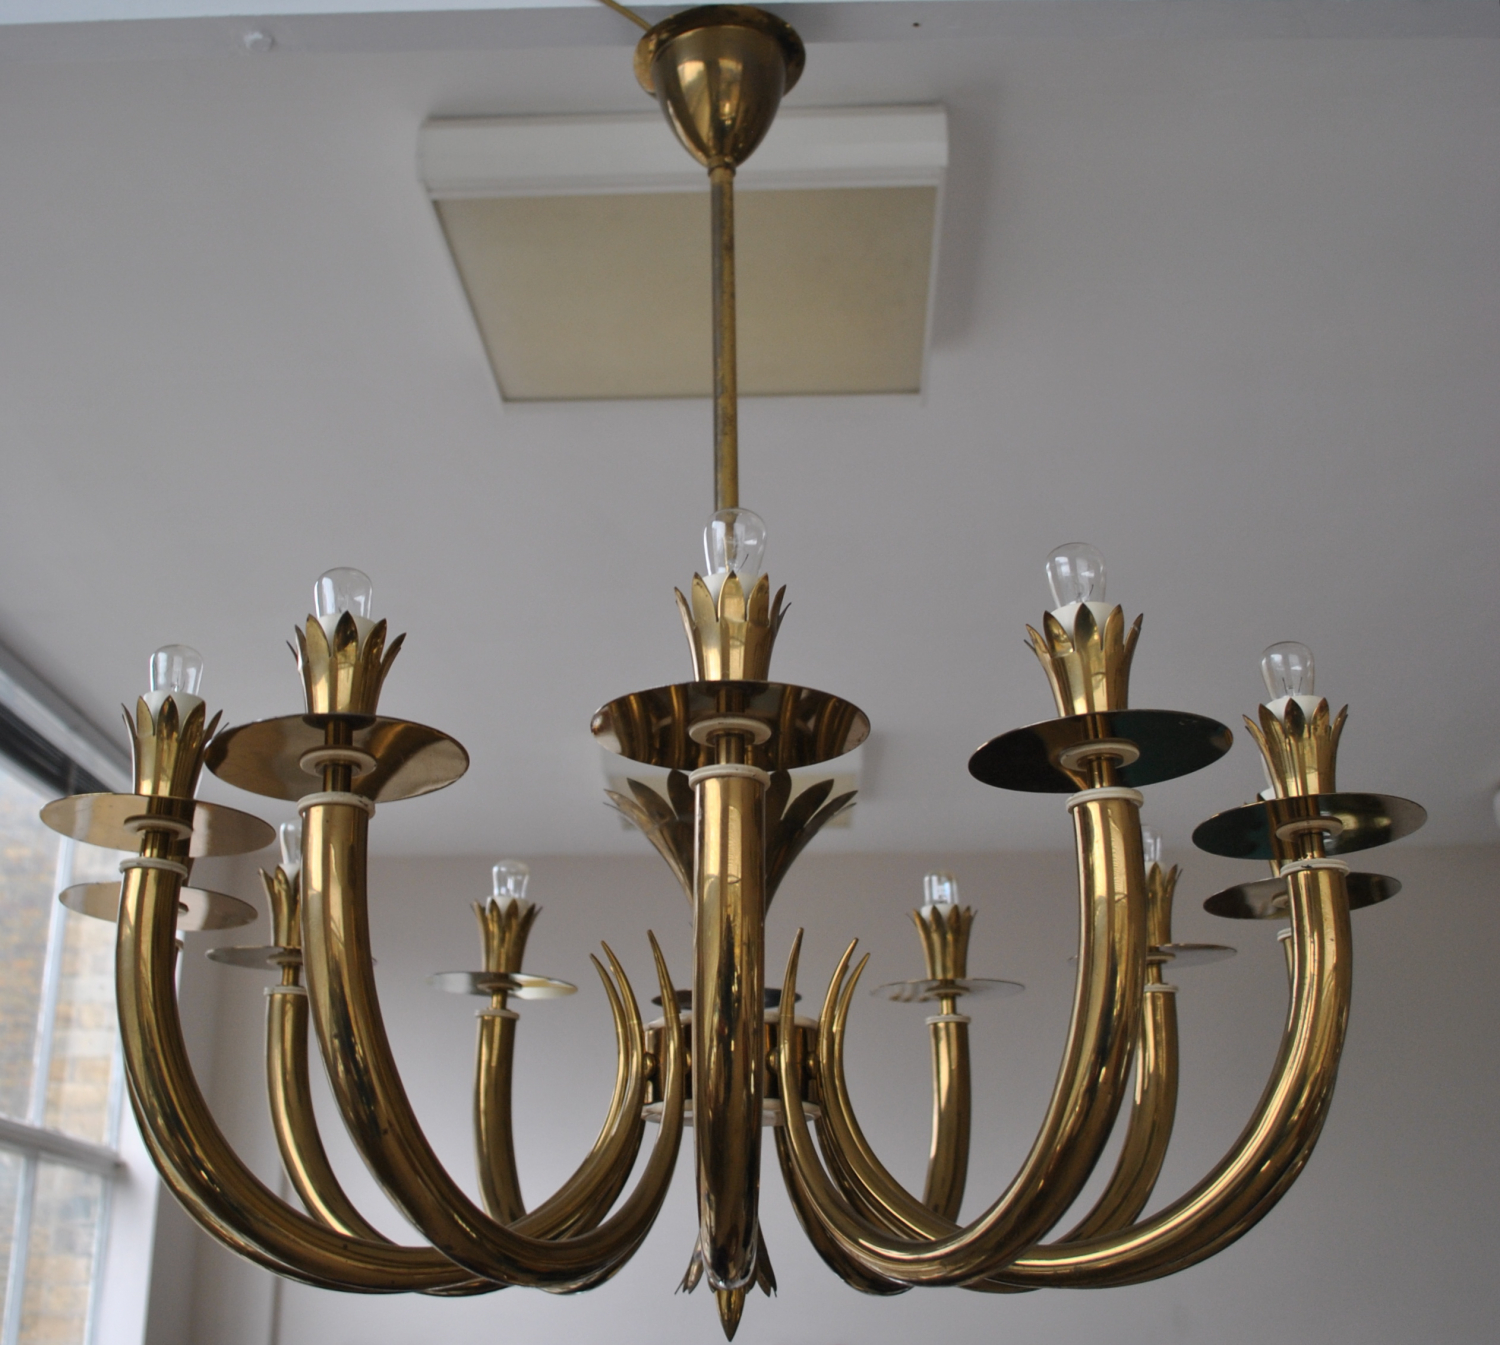 Brass Italian Chandelier